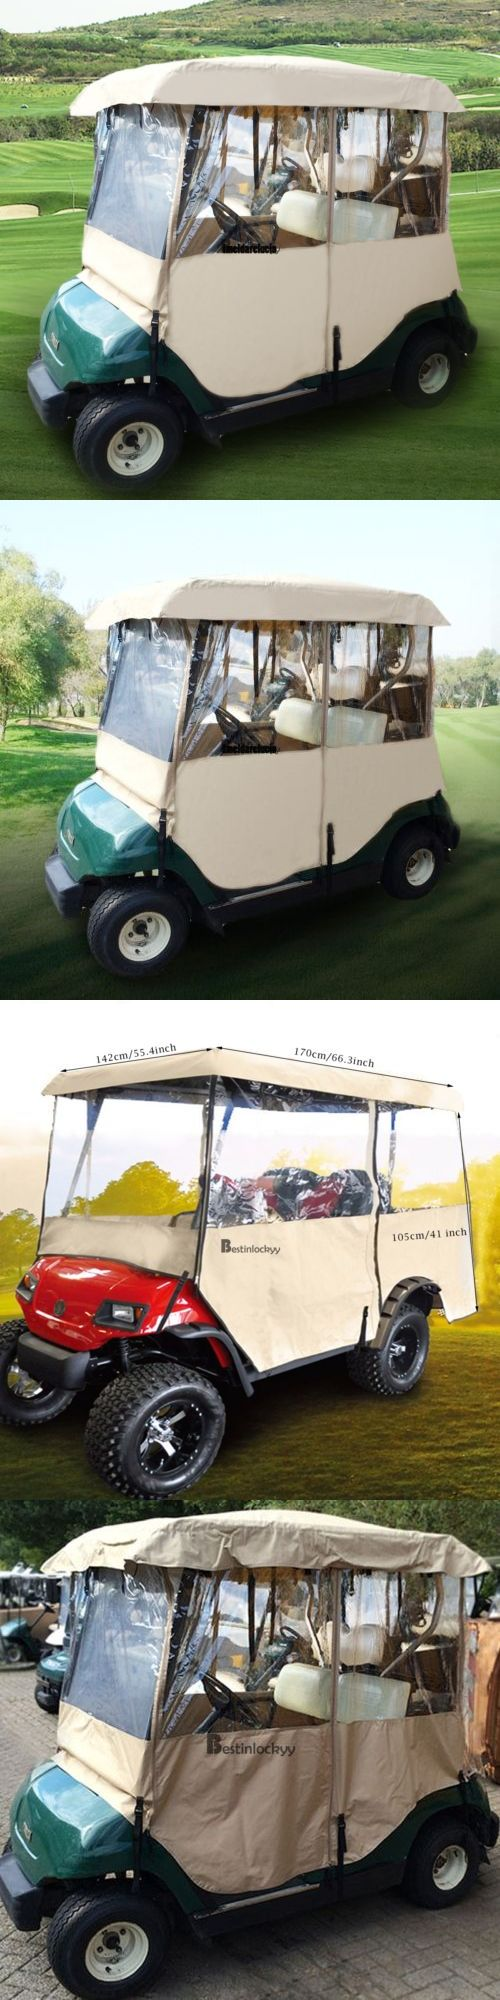 Push-Pull Golf Carts 75207: By 2 Passenger Driving Enclosure Golf Cart Cover Fit Ez Go,Club Car,Yamaha Cart -> BUY IT NOW ONLY: $51.99 on eBay!